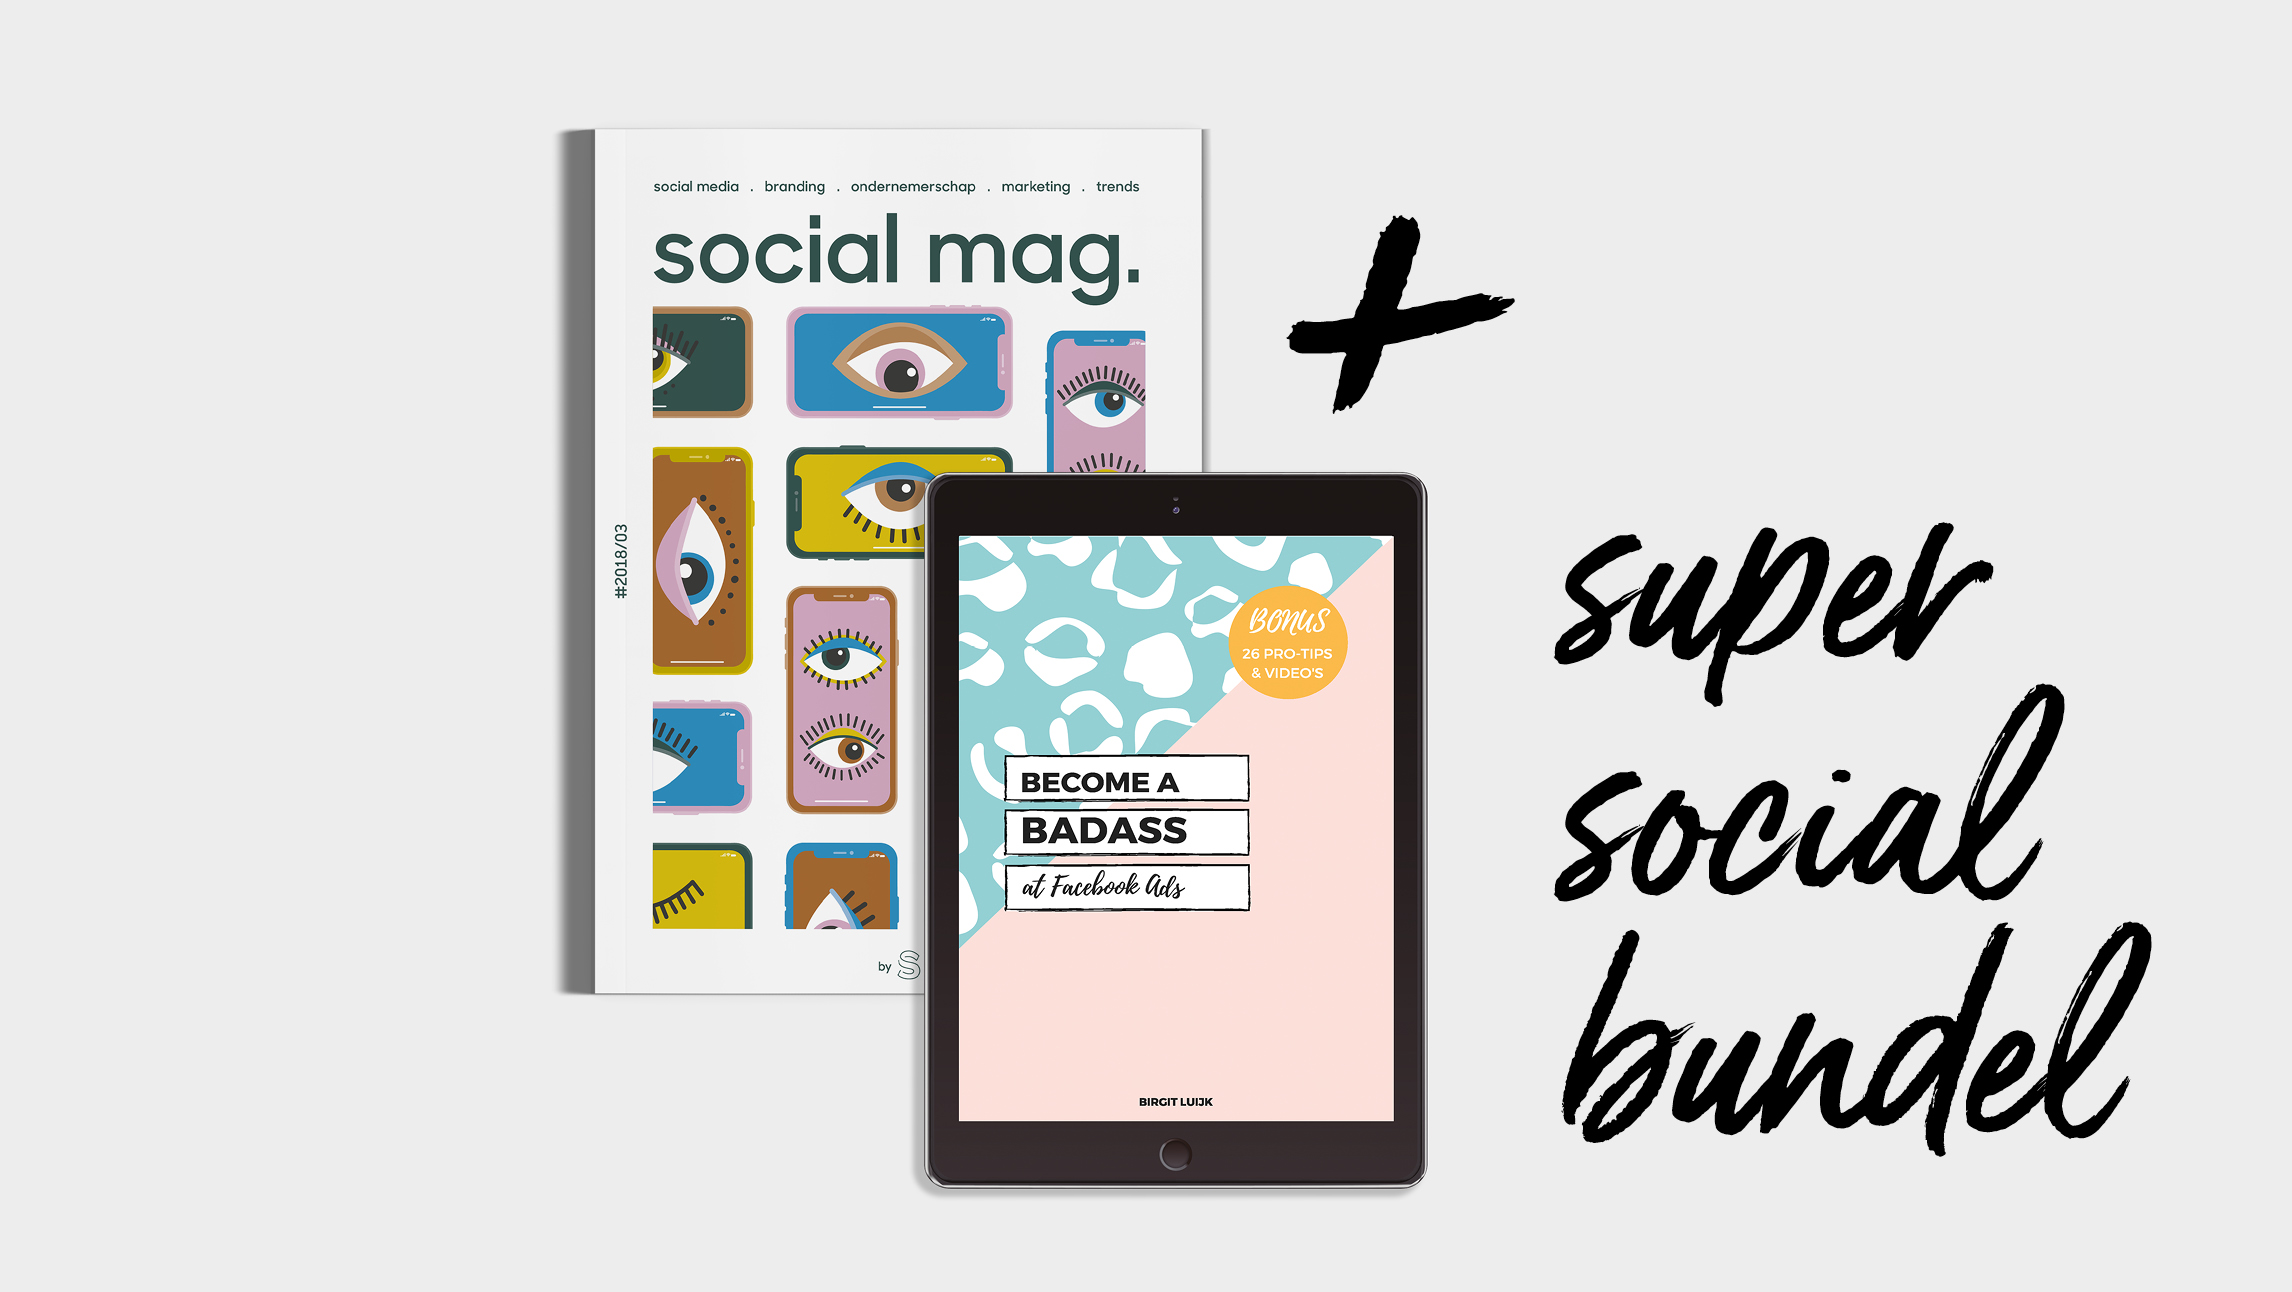 super social bundle